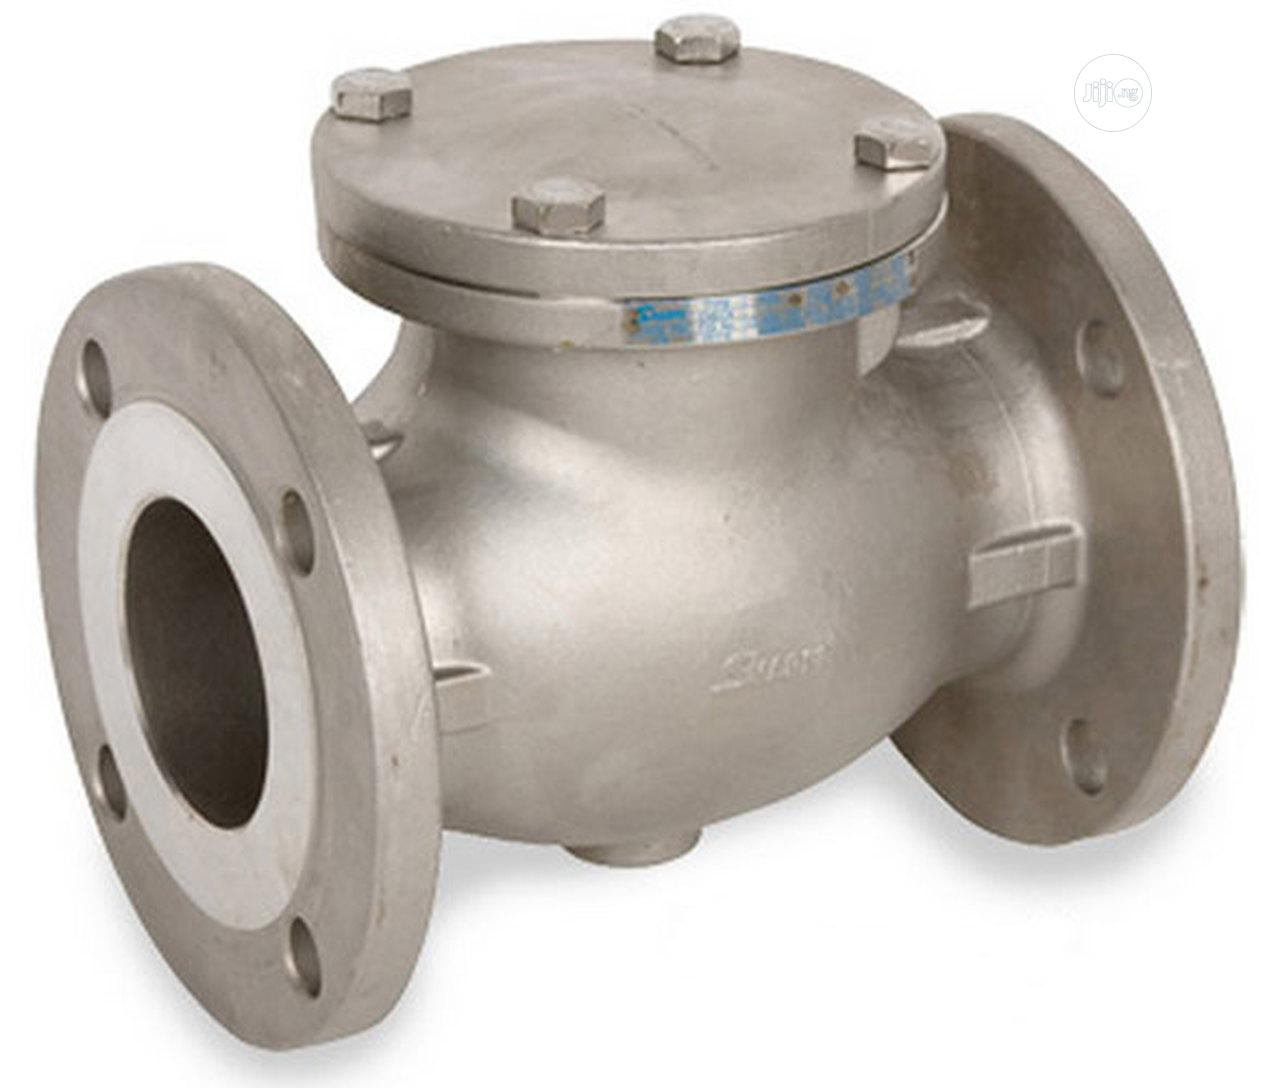 Check Valve In Ilupeju Plumbing Water Supply Alfa Centauri West Africa Limited Jiji Ng For Sale In Ilupeju Buy Plumbing Water Supply From Alfa Centauri West Africa Limited